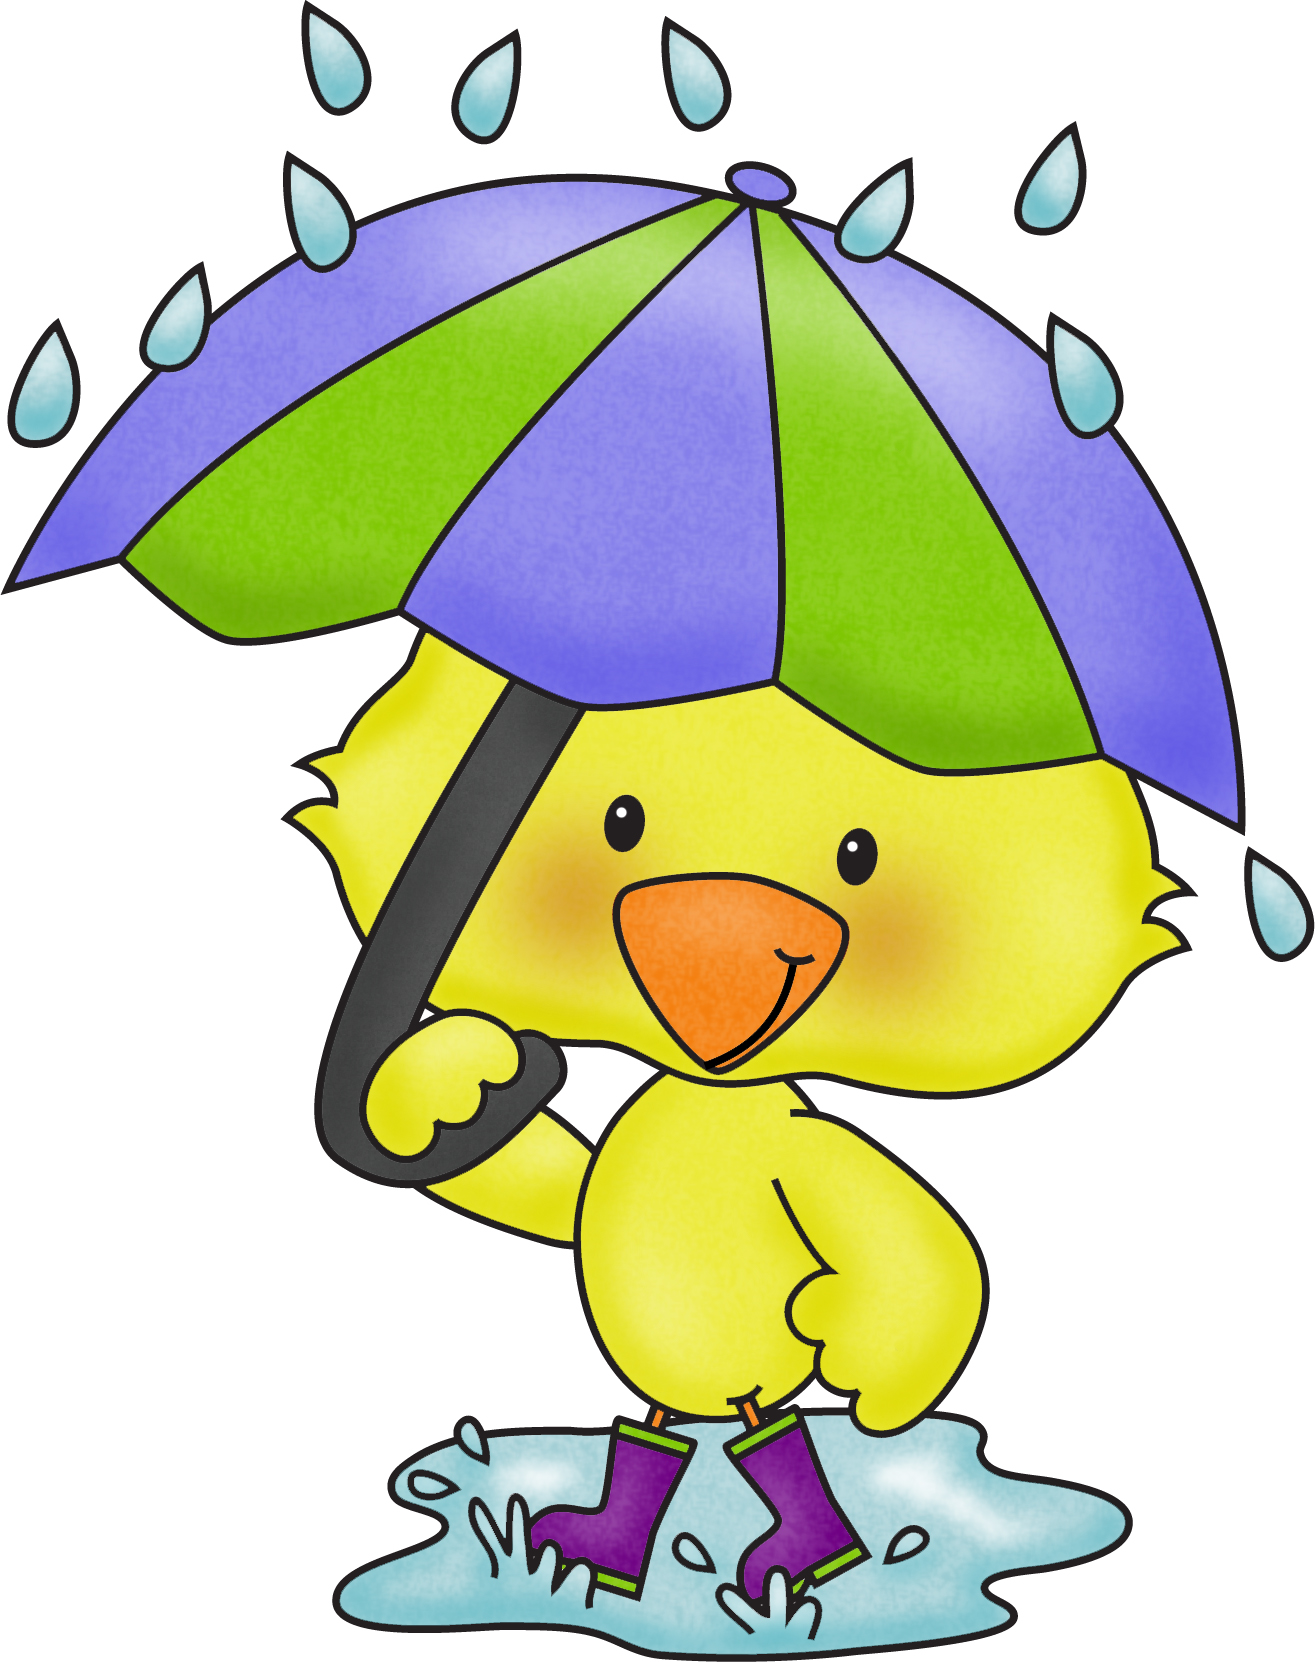 April free clipart jpg freeuse download April showers clip art free clipart image 4 clipart – Gclipart.com jpg freeuse download